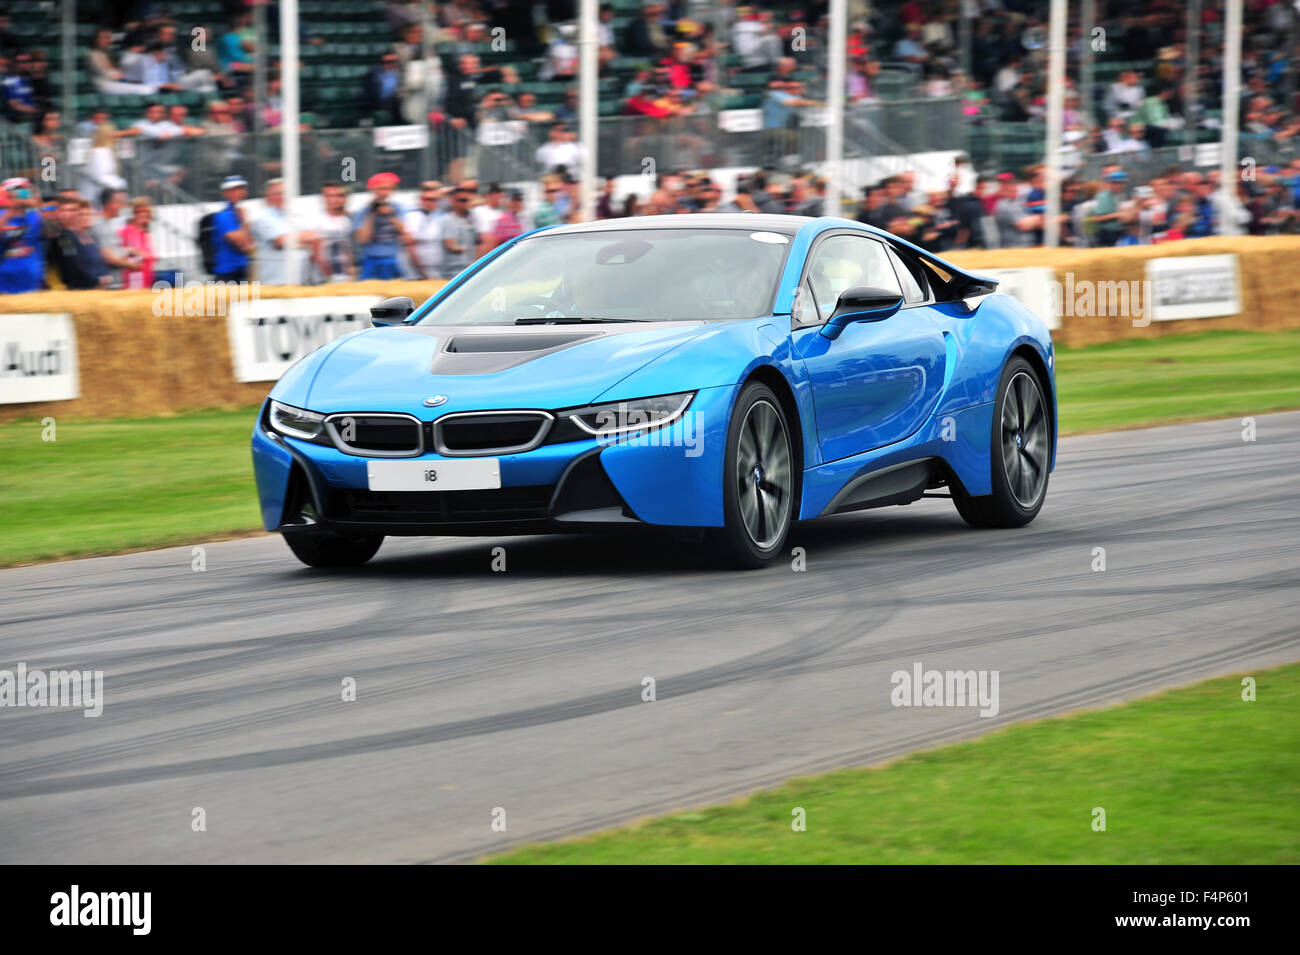 A Light Blue BMW I8 At The Goodwood Festival Of Speed In UK